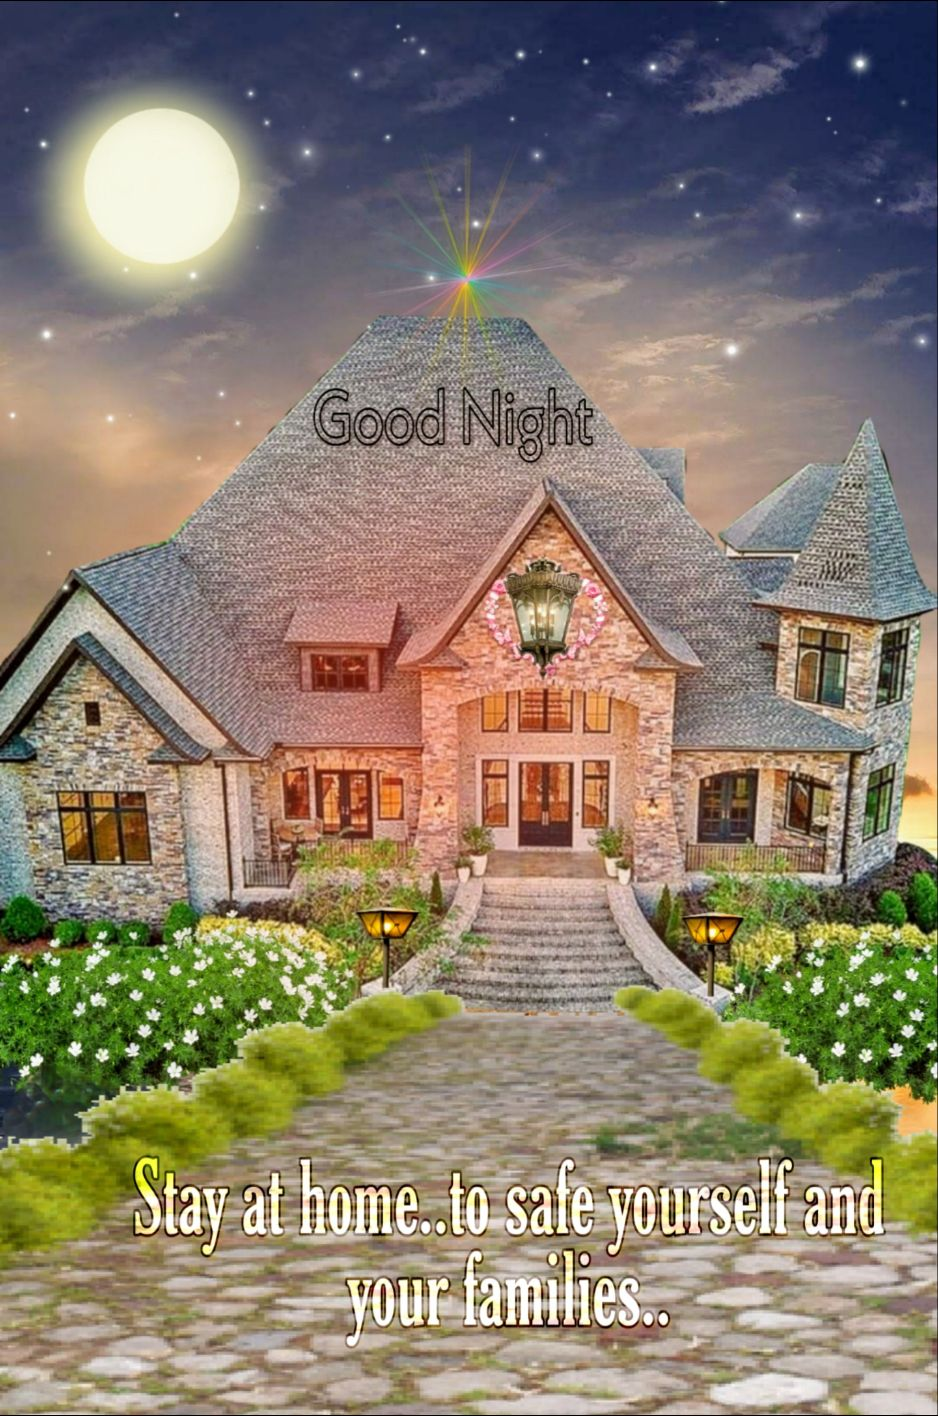 good night - Good Night Stay at home . . to safe yourself and your families . - ShareChat